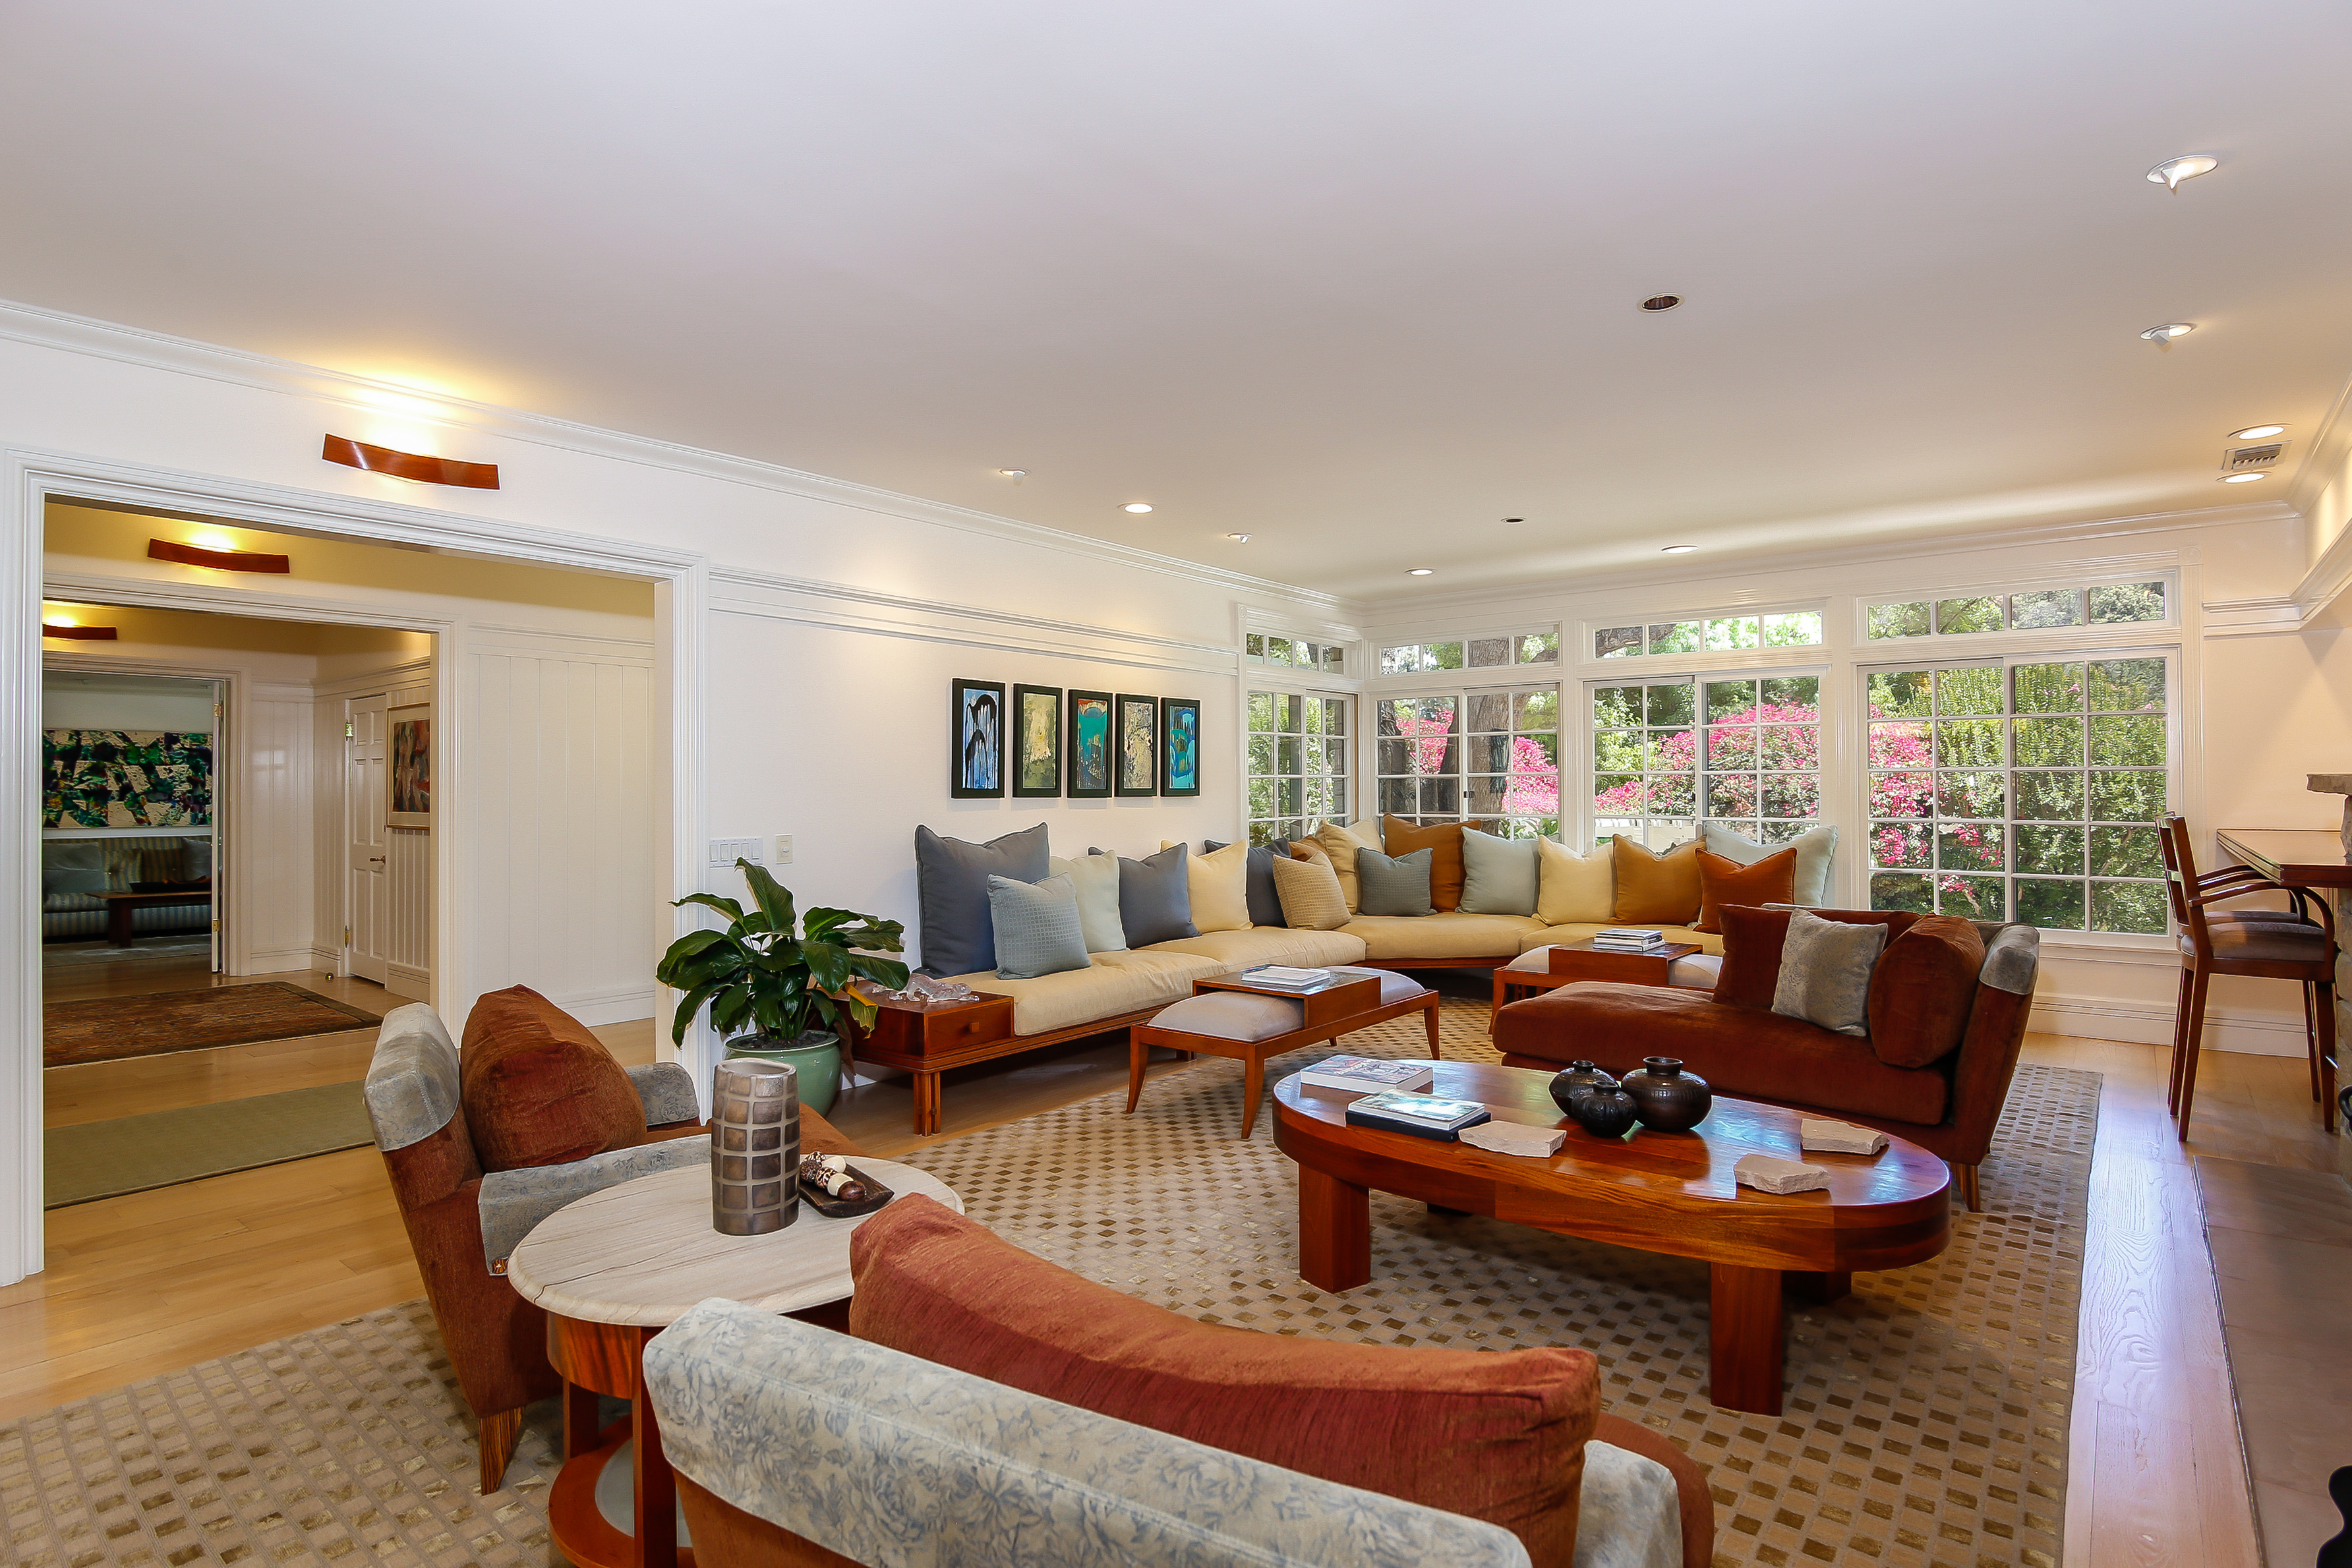 Former Home Of Golden Girl Rue Mcclanahan Asking 5 5m